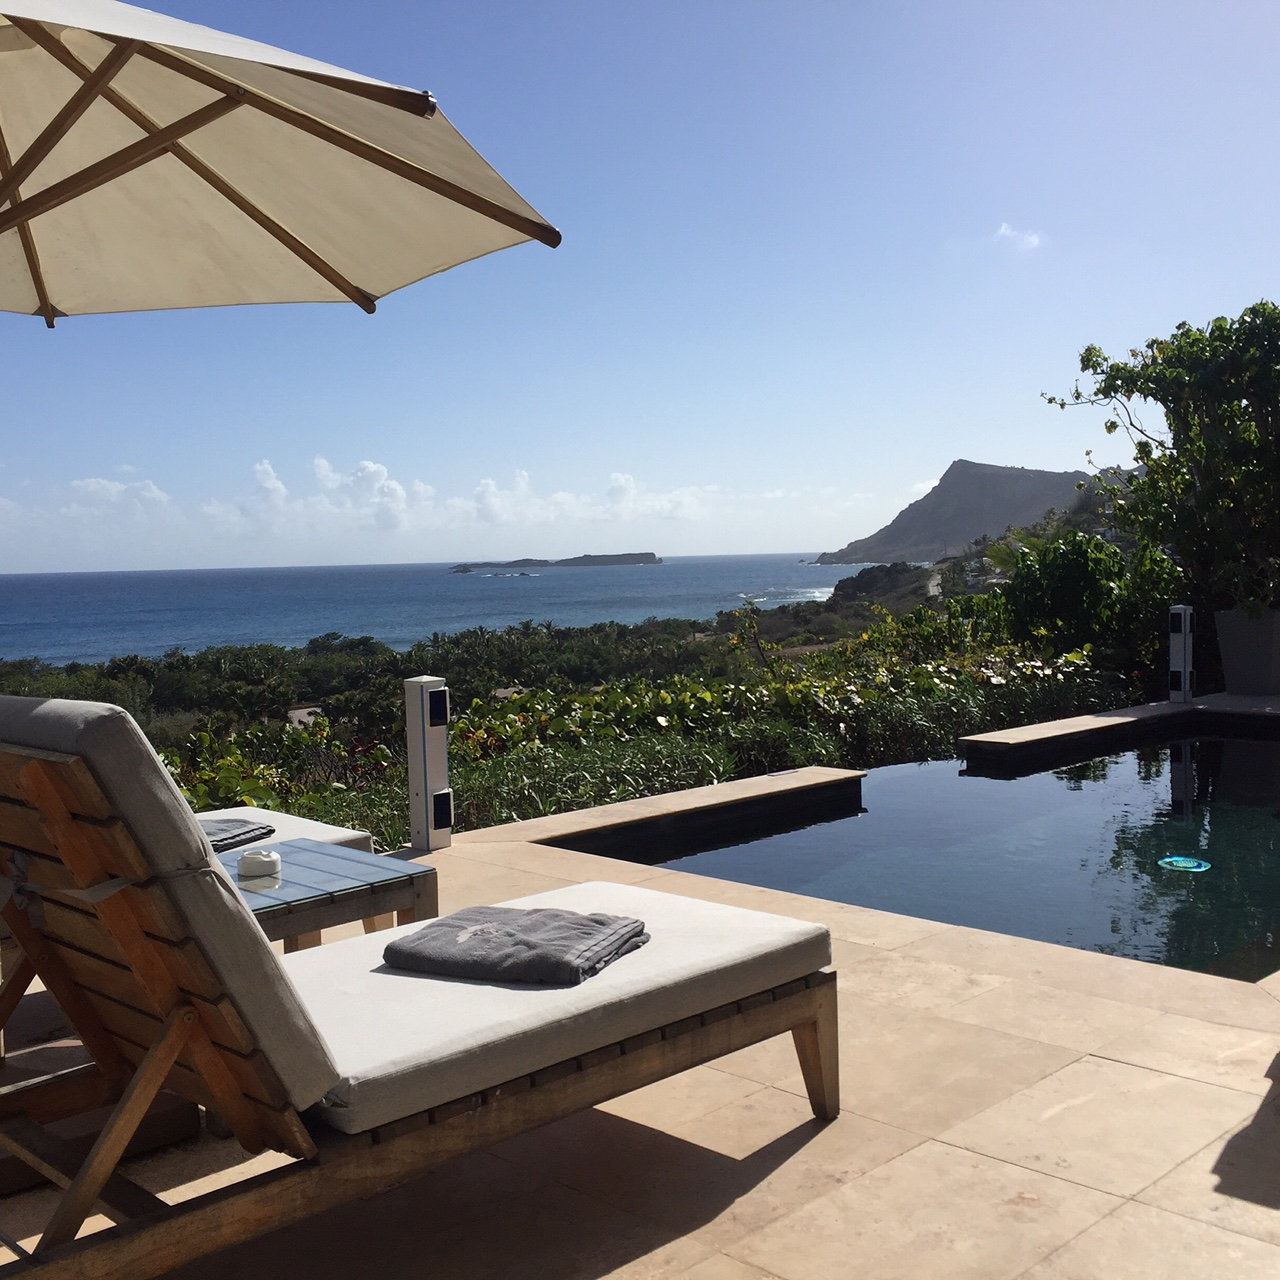 Dreamy trip to St. Barth's